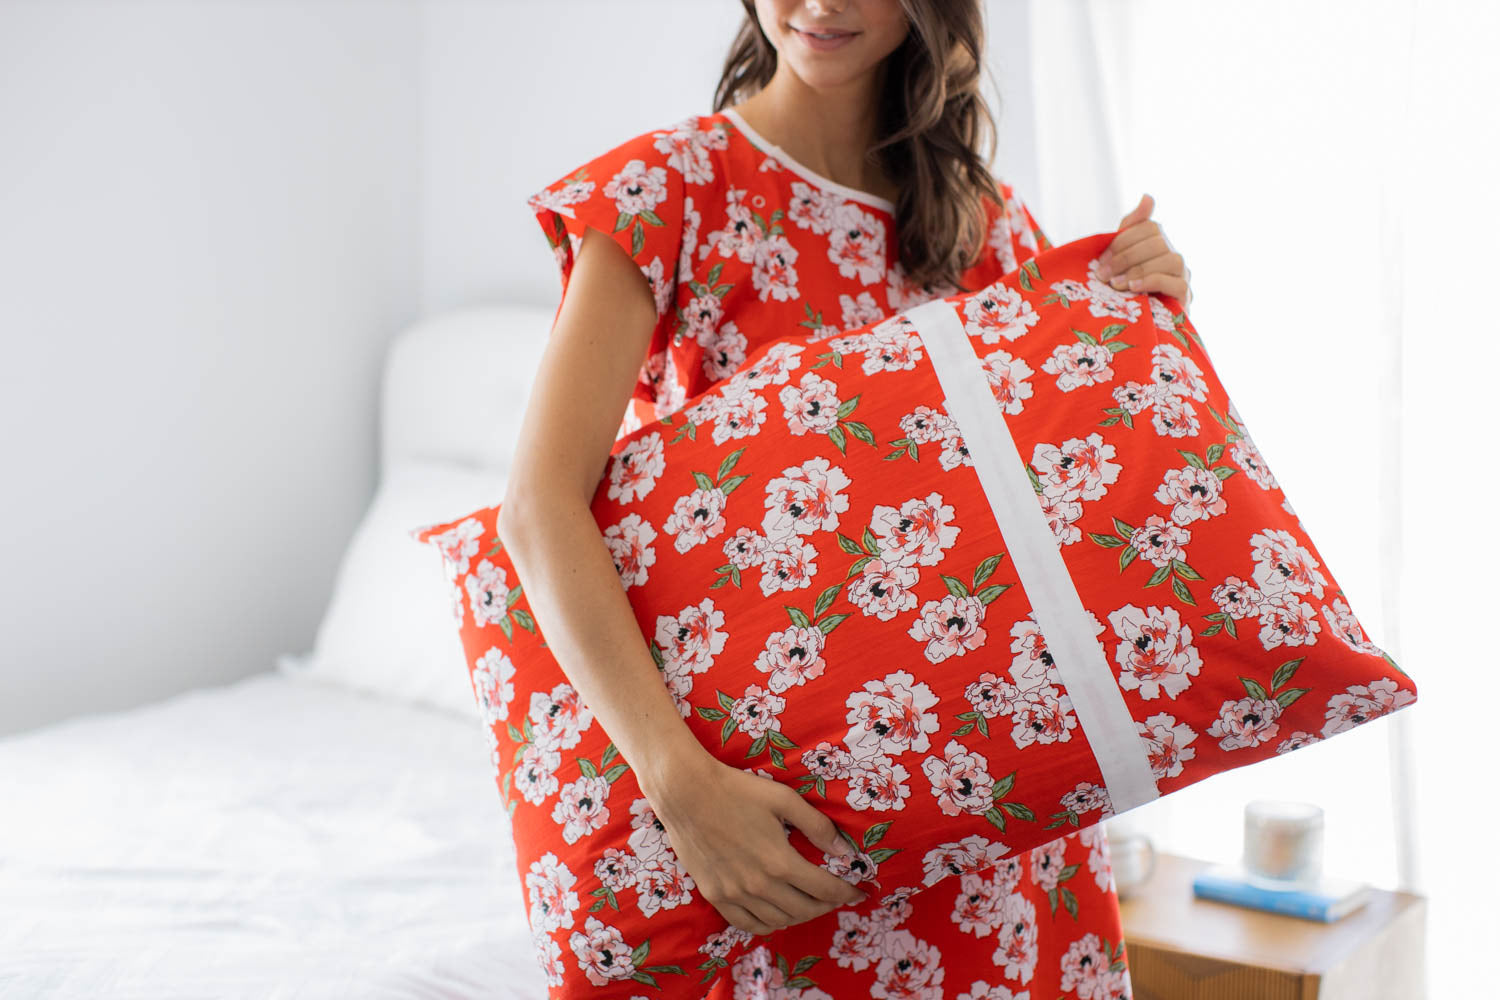 Sadie print pillowcase. Brighten up your hospital stay with a bright red cotton pillowcase.